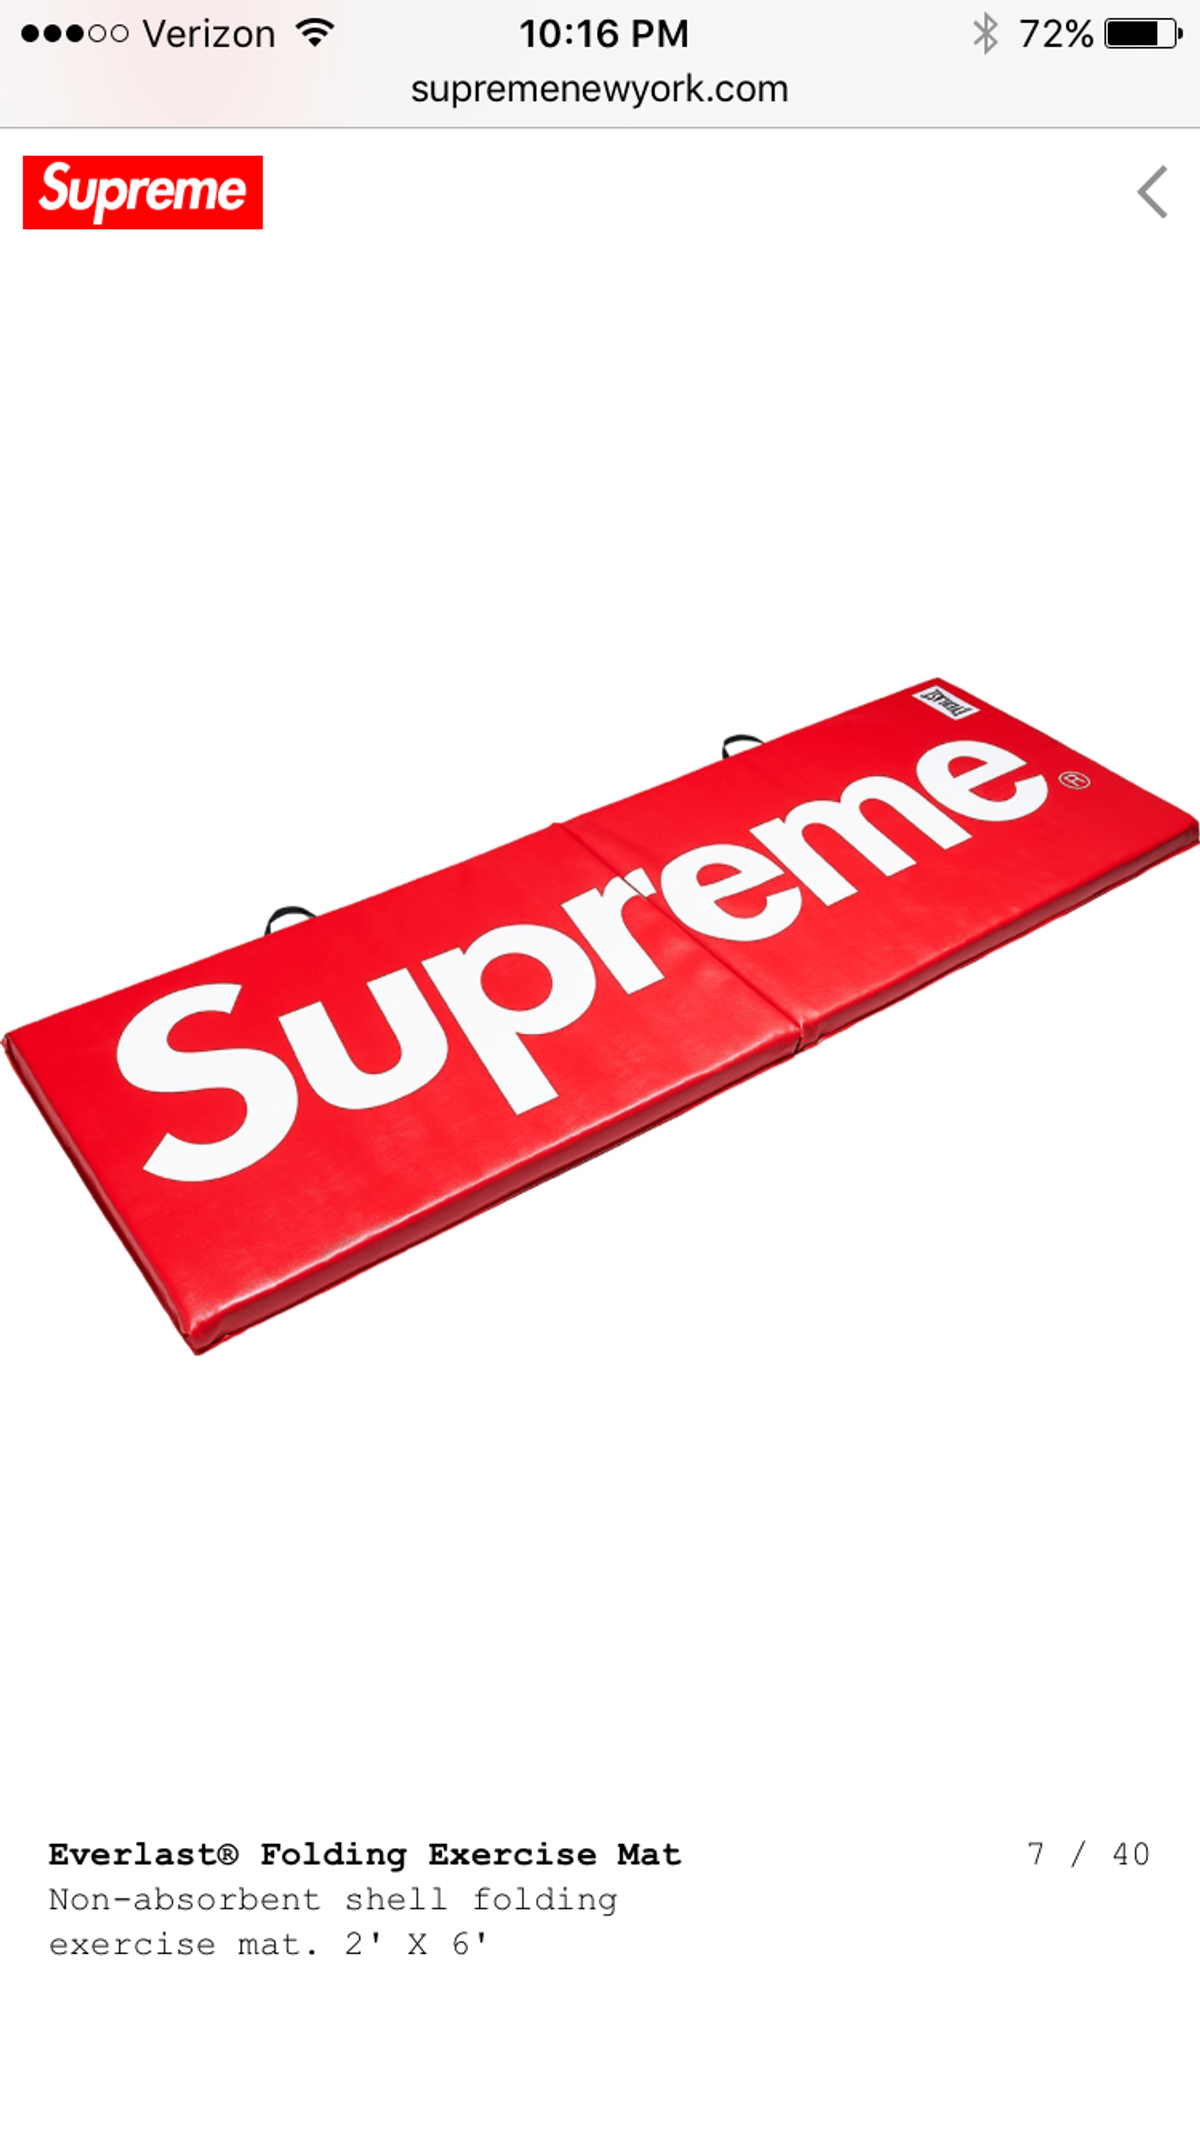 Supreme Supreme®/Everlast® Folding Exercise Mat 2' X 6' Size One Size $158